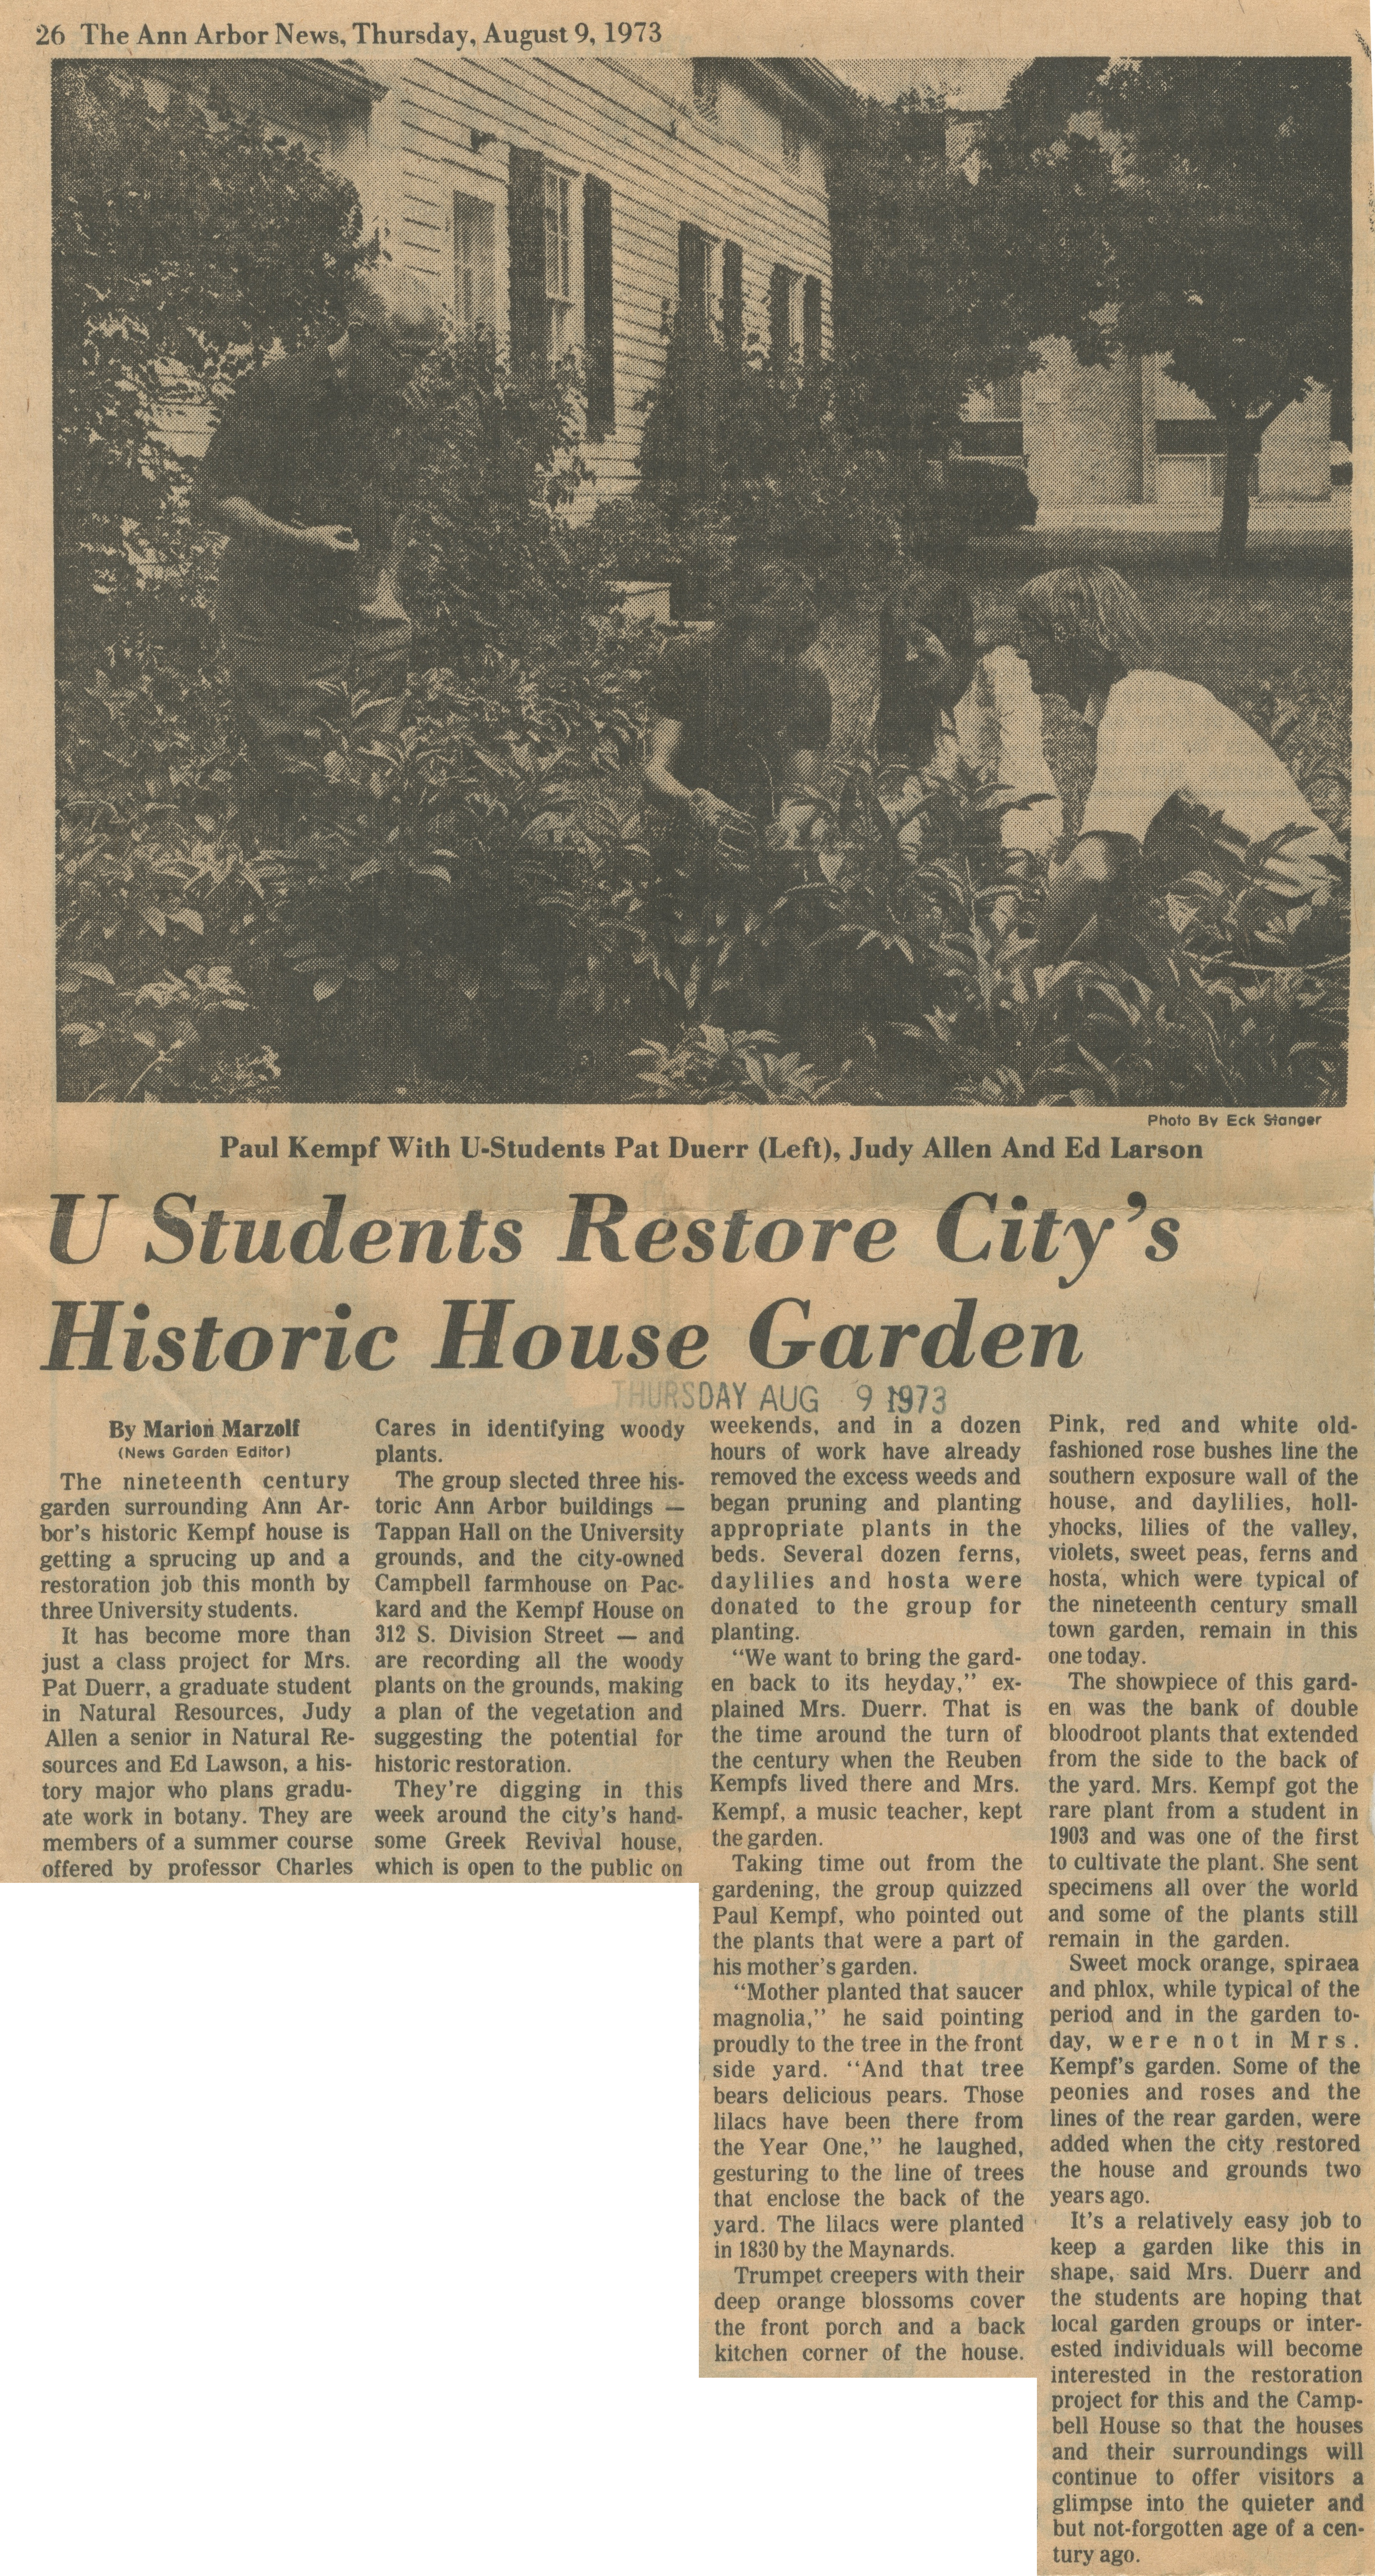 U Students Restore City's Historic House Garden image